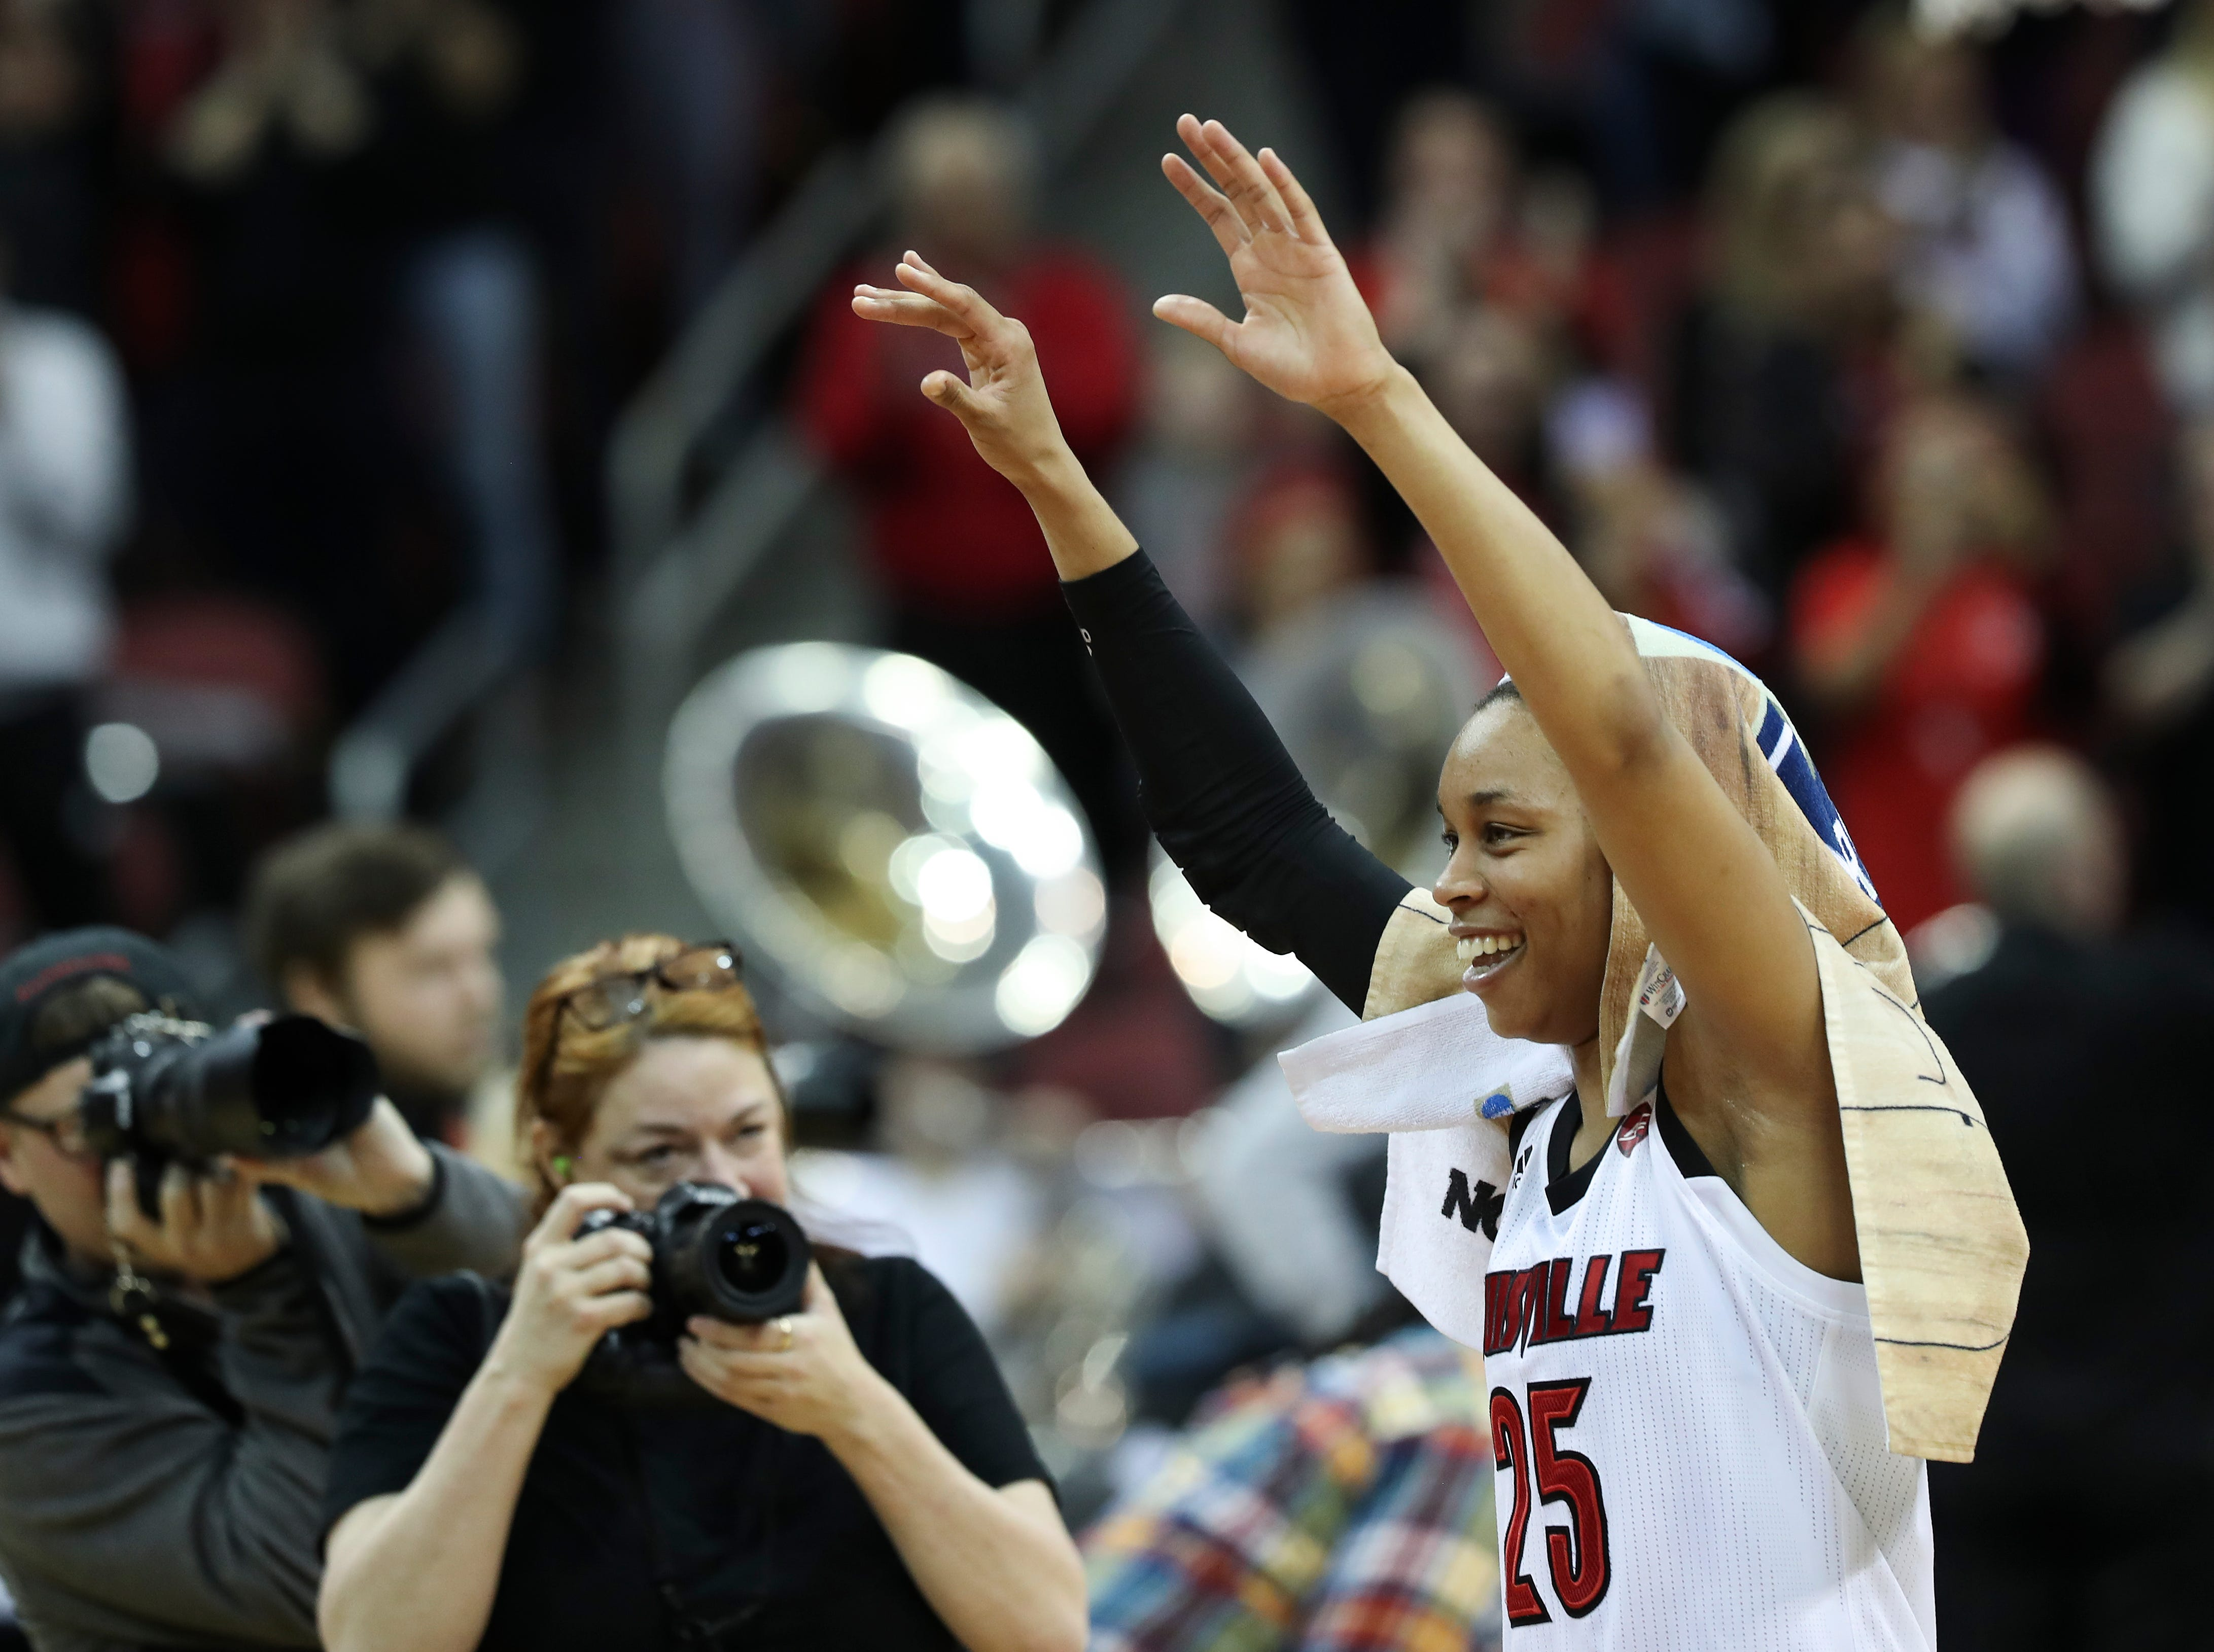 U of L's Asia Durr (25) acknowledges the crowd after their 71-50 defeat of Michigan in the second round of their NCAA Tournament game at the Yum Center.  They advance to the Sweet 16 in the Albany regional.Mar. 24, 2019